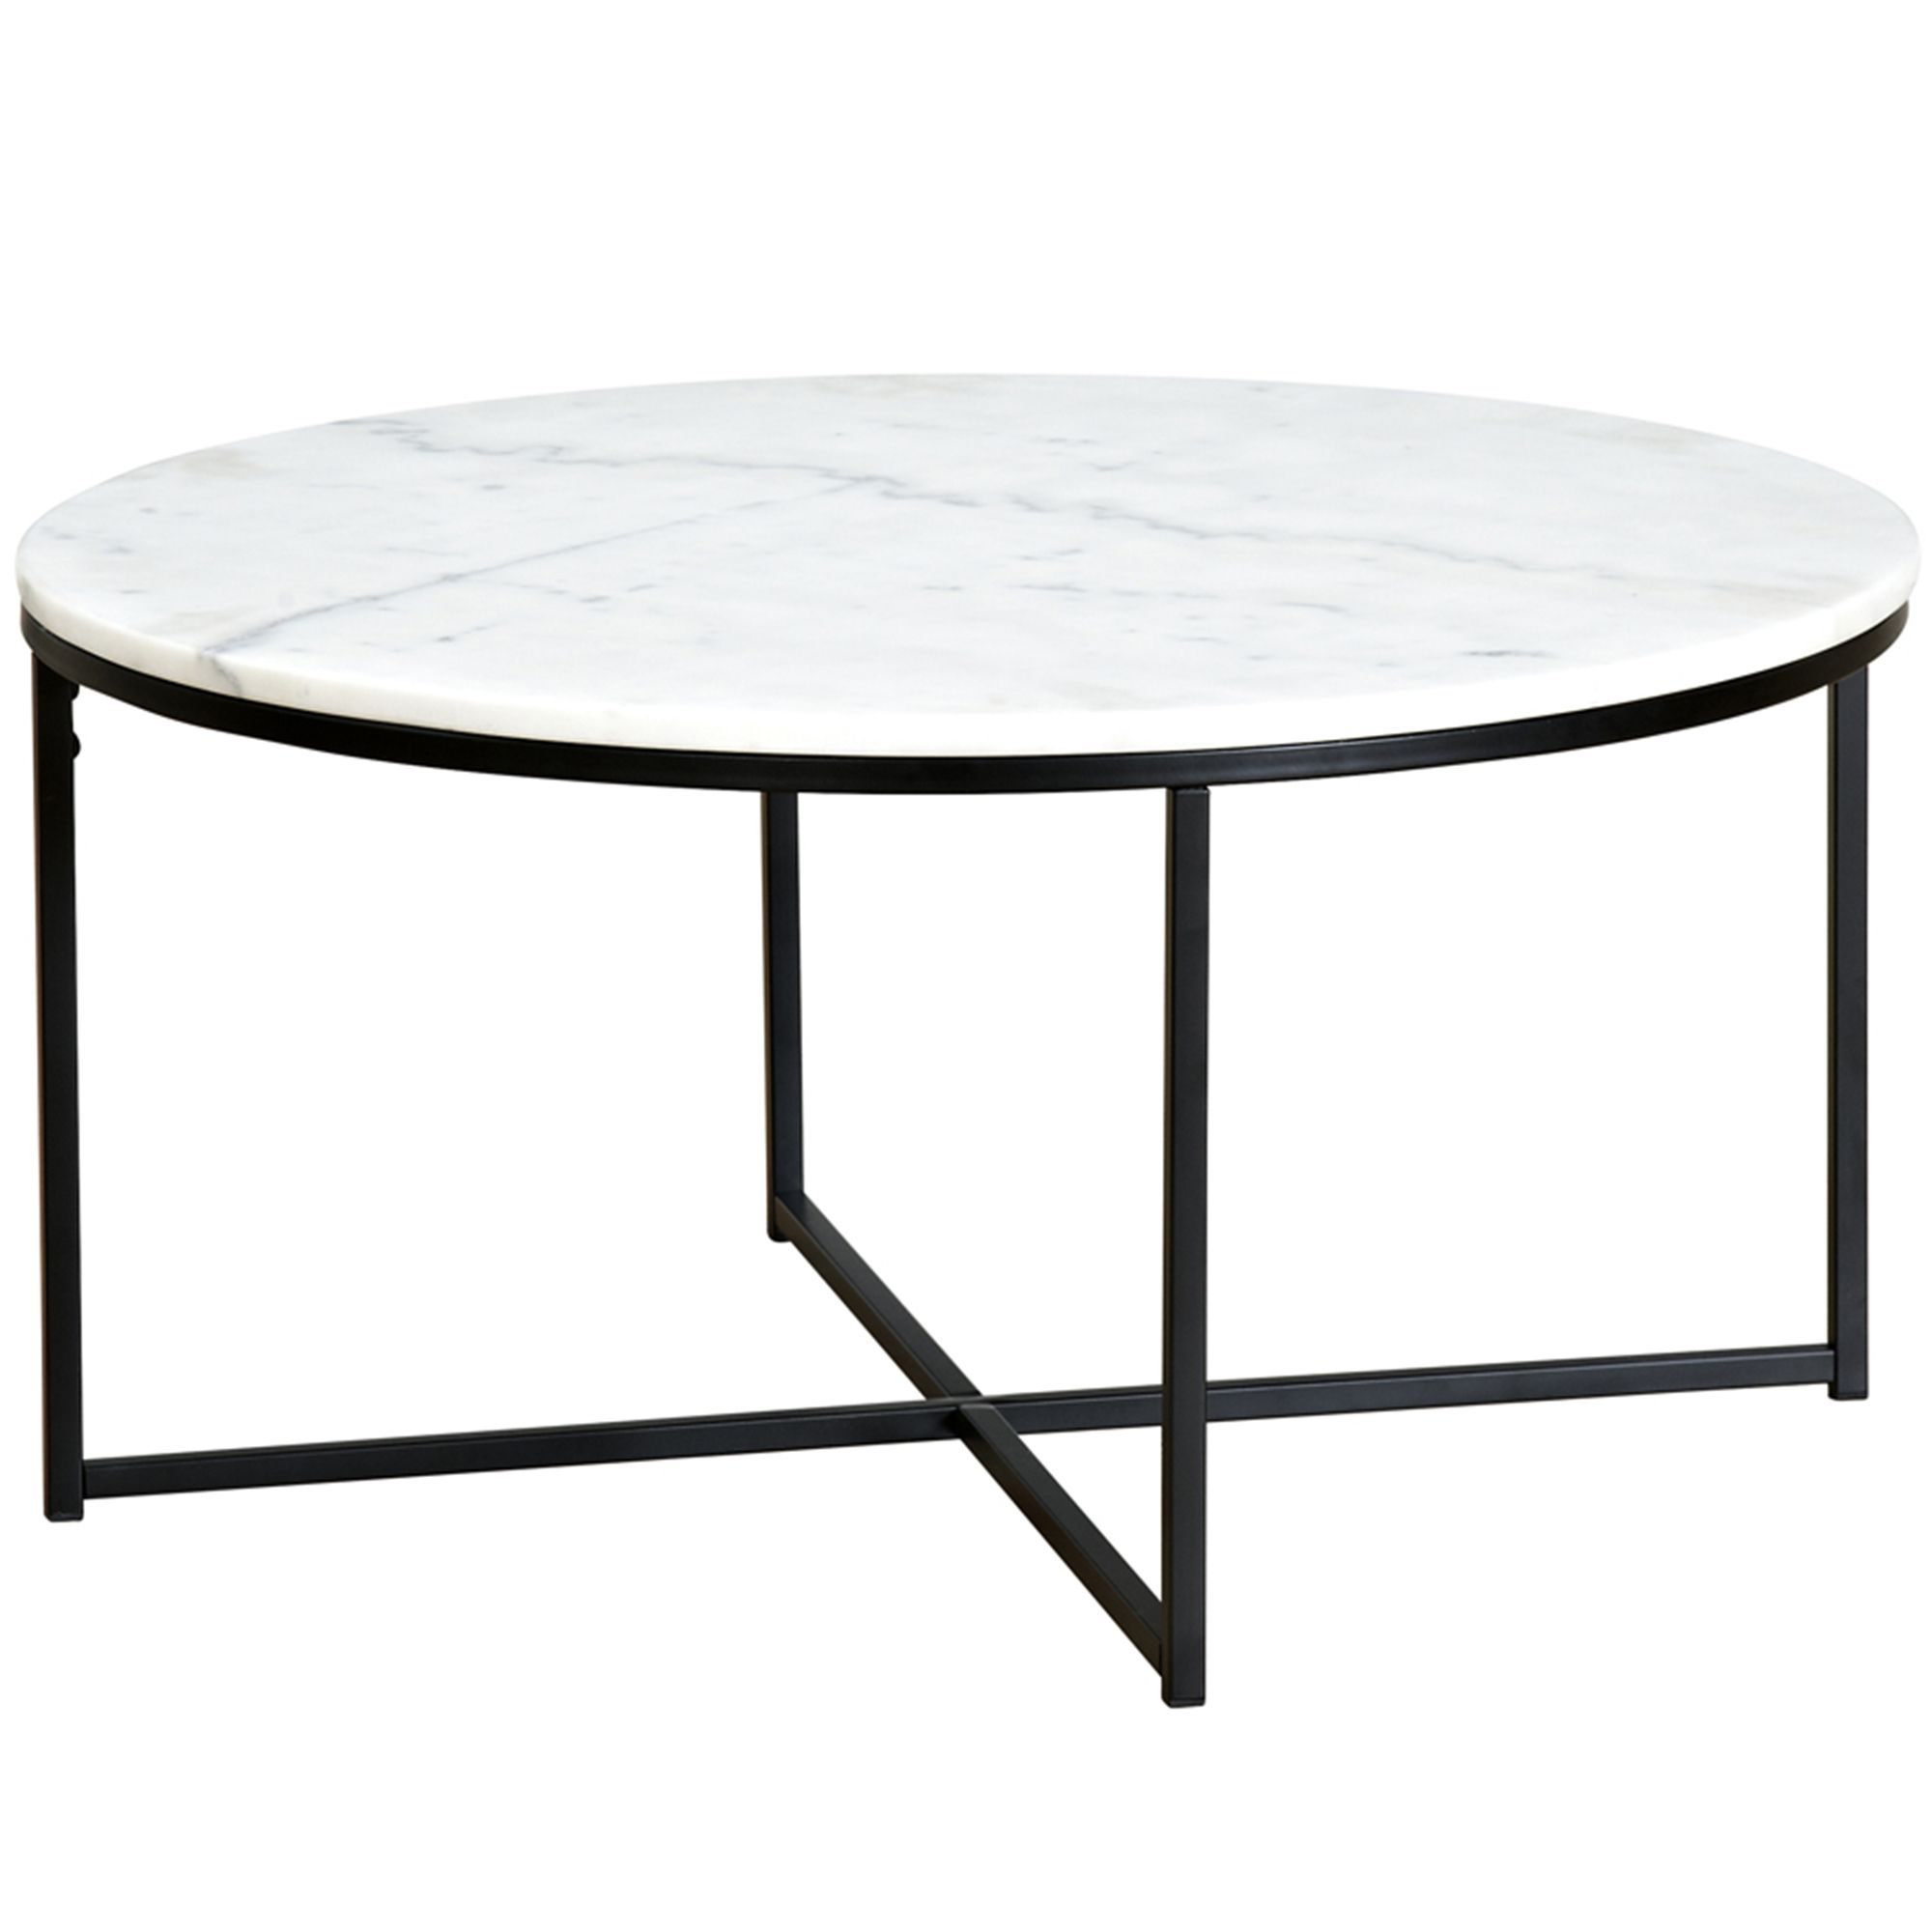 80cm Round White Siena Marble Coffee Table Temple Amp Webster Whiteroundcoffeetable Marble Top Coffee Table Marble Round Coffee Table Marble Coffee Table [ jpg ]